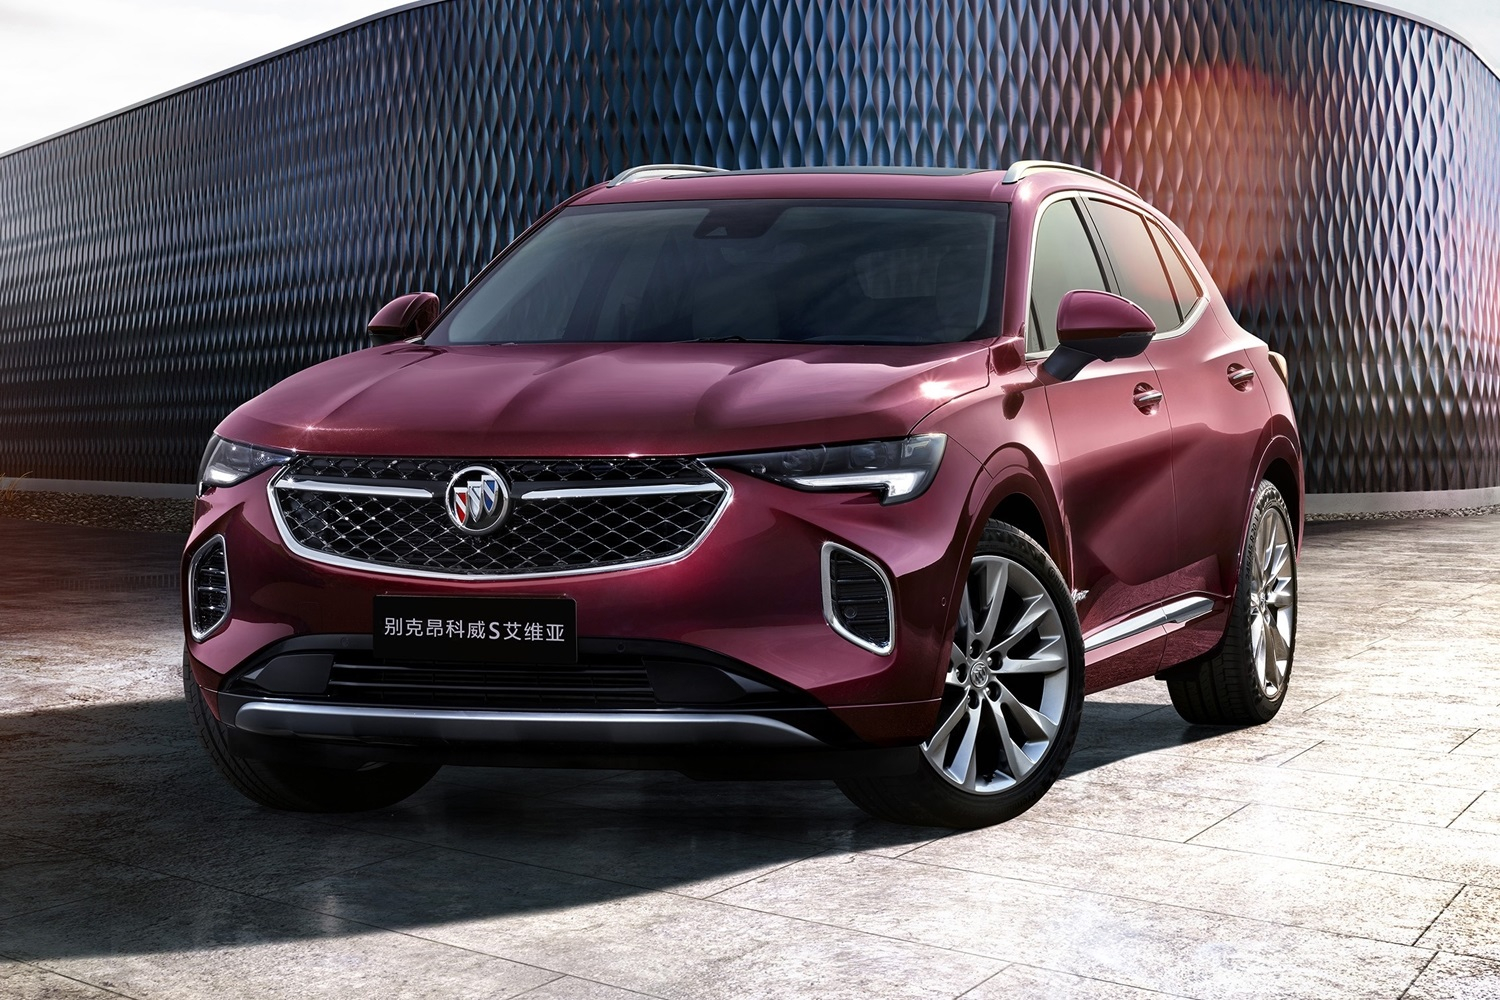 Range-Topping 2021 Buick Envision Avenir Revealed | Gm Authority New 2022 Buick Enclave Avenir Awd Review, Accessories, Build